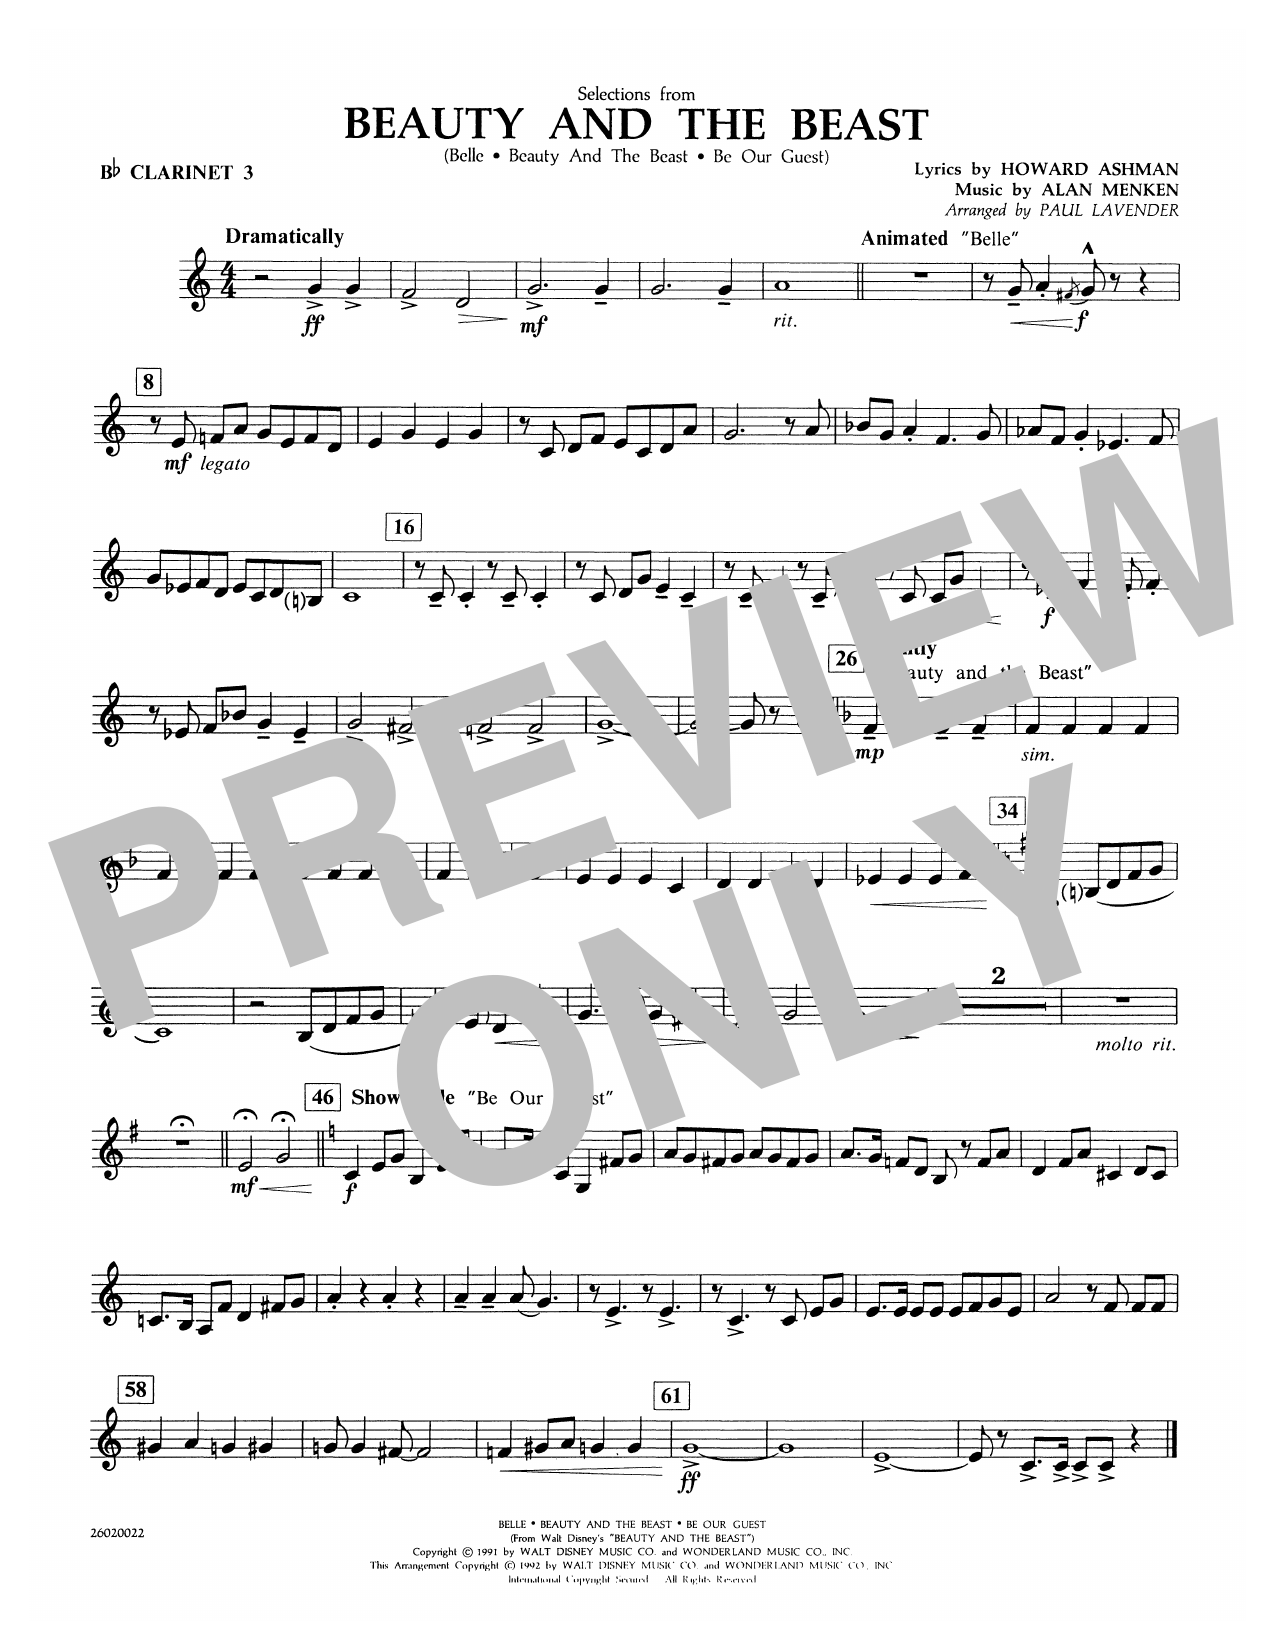 Selections from Beauty and the Beast - Bb Clarinet 3 Sheet Music